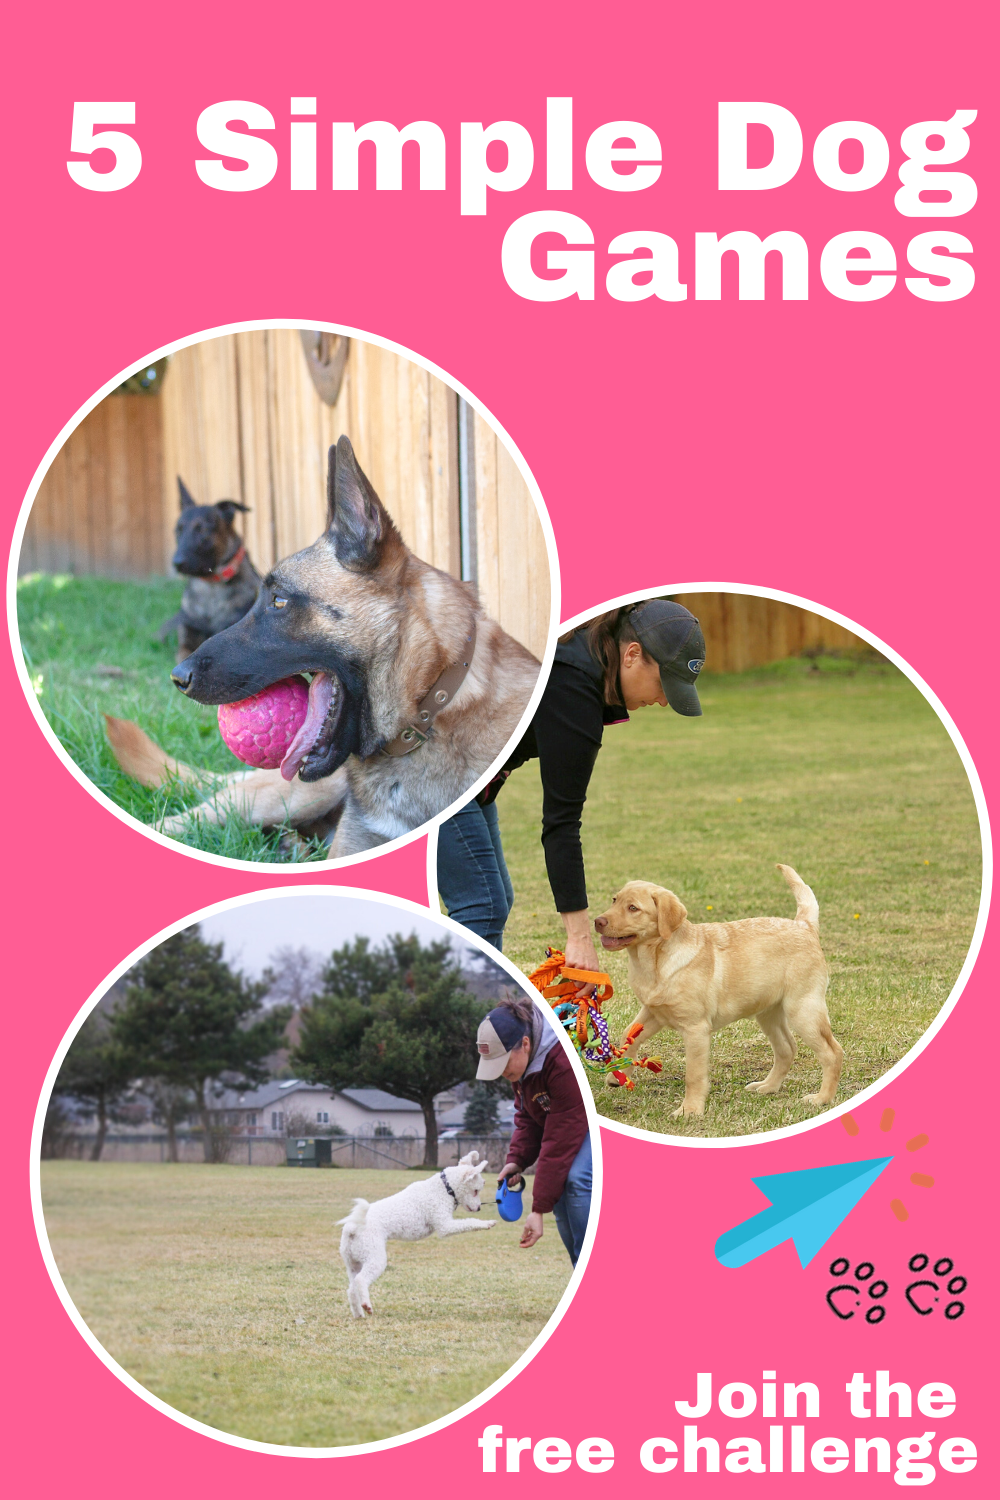 5 Simple dog games you can do to have fun and play while